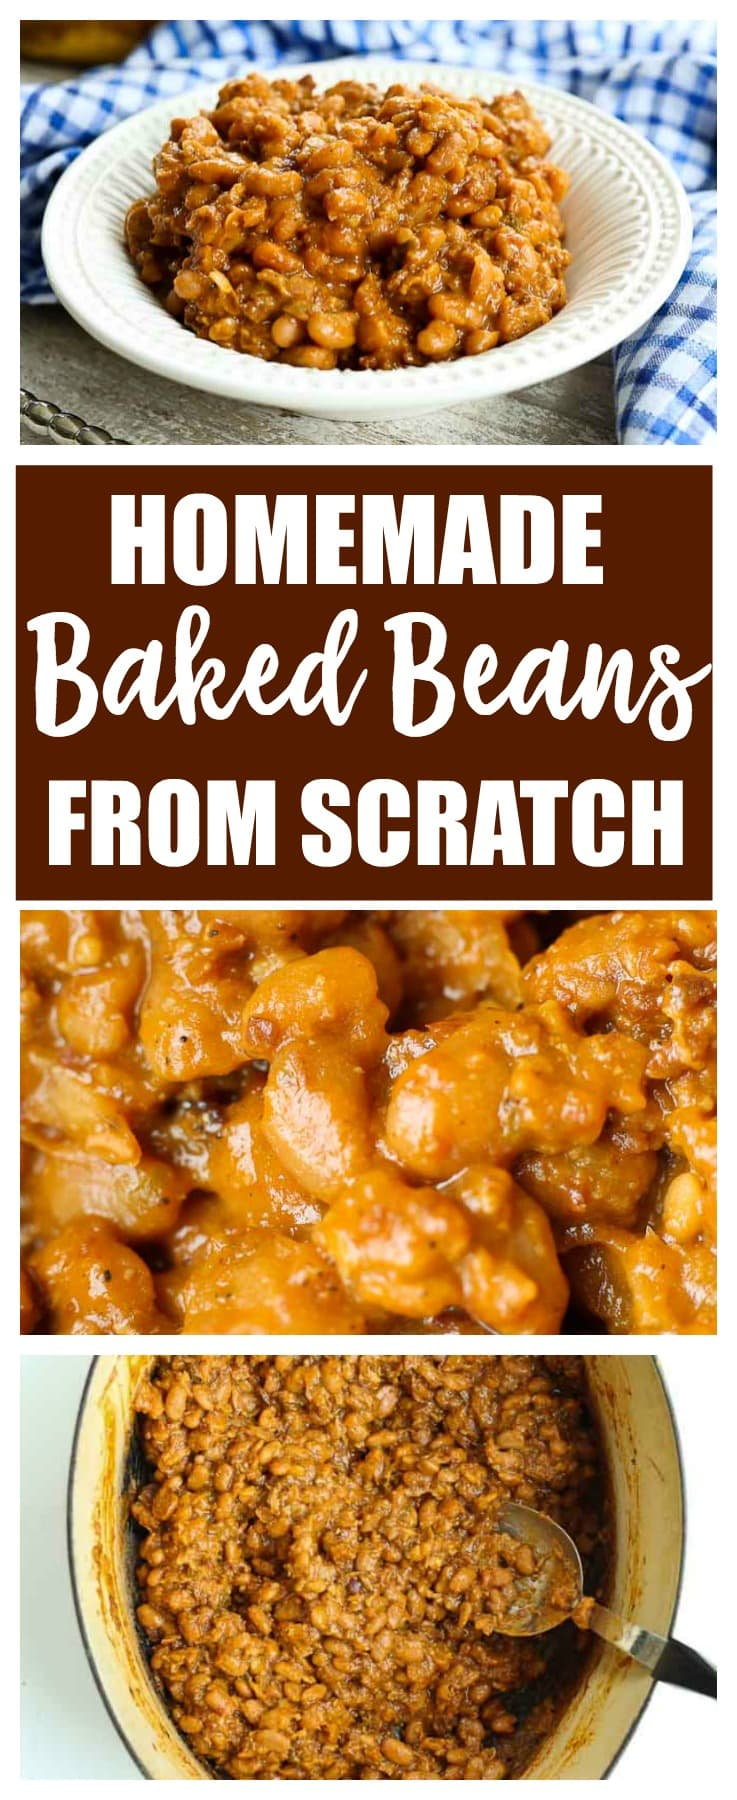 homemade baked beans from scratch | recipe | barbecue | summer | dried beans | clean eating | healthy homemade baked beans from scratch | recipe | barbecue | summer | dried beans | clean eating | healthy